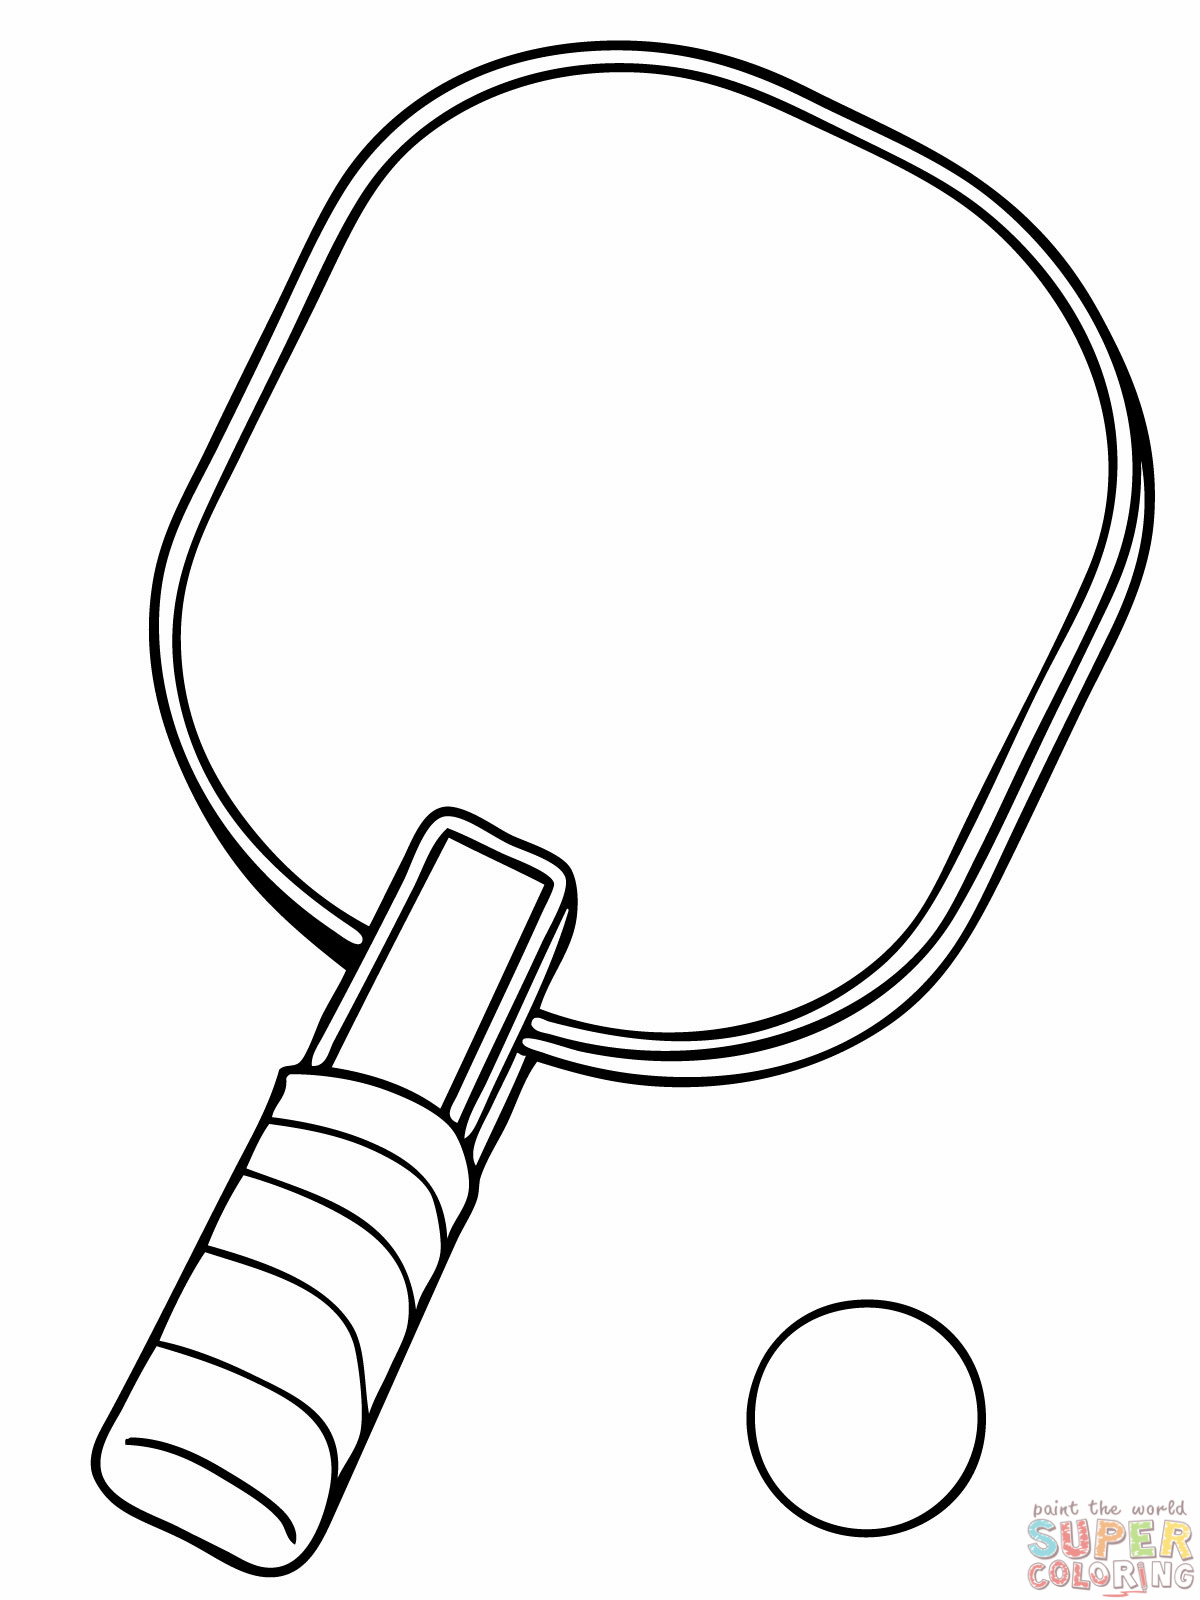 tennis racket coloring page clipart panda free clipart